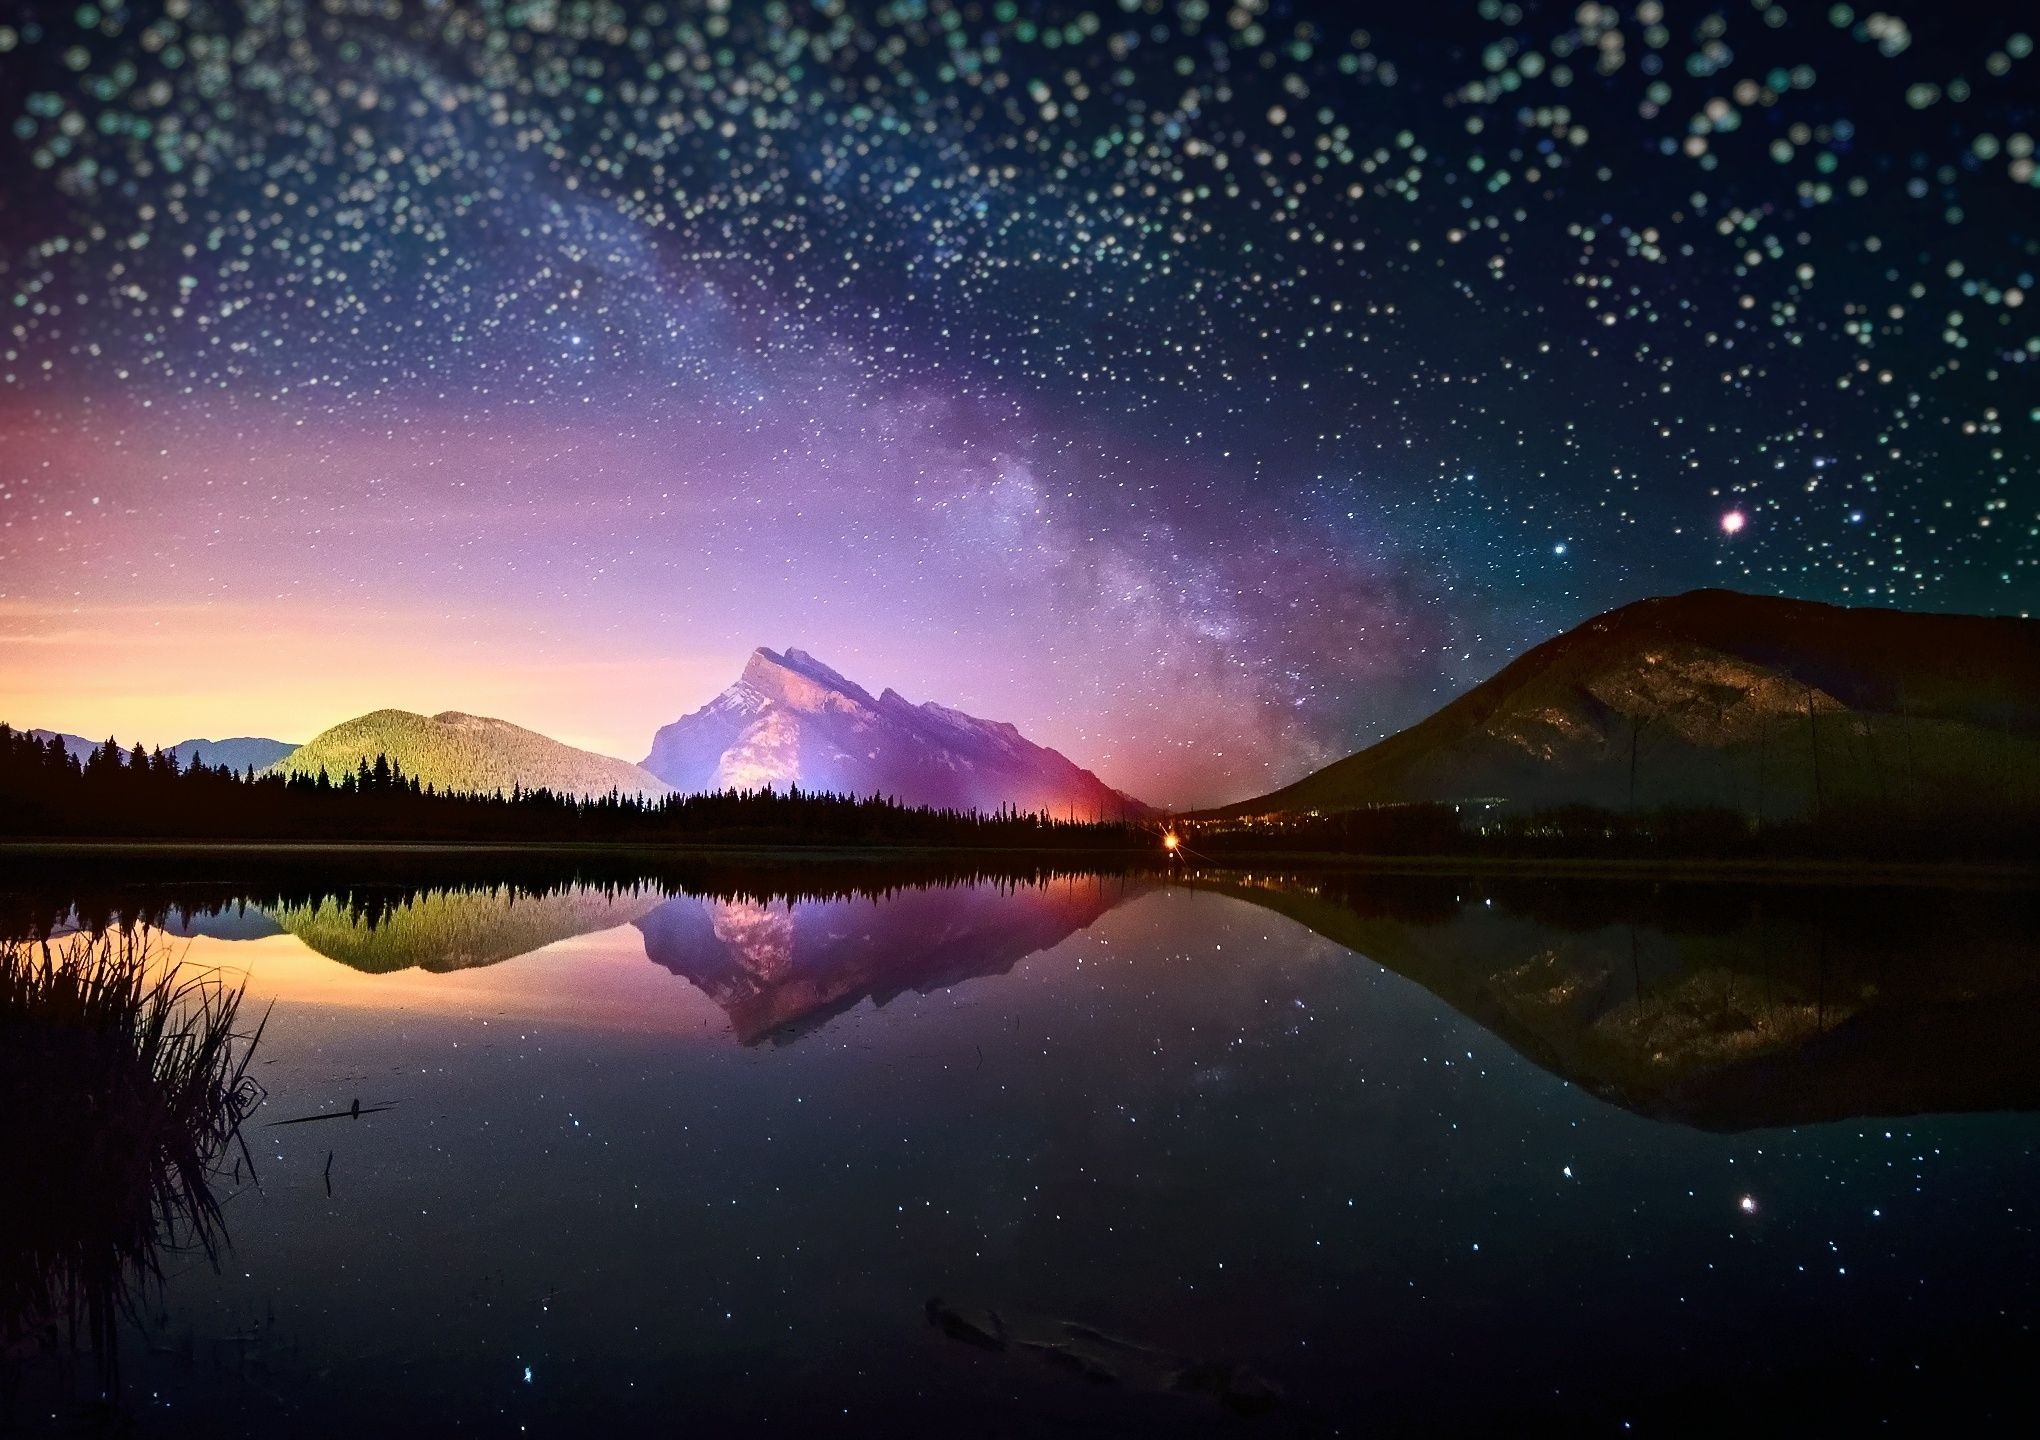 10 Best Starry Night Sky Wallpaper Hd FULL HD 1920×1080 For PC Background | Wallpaper for PC ...